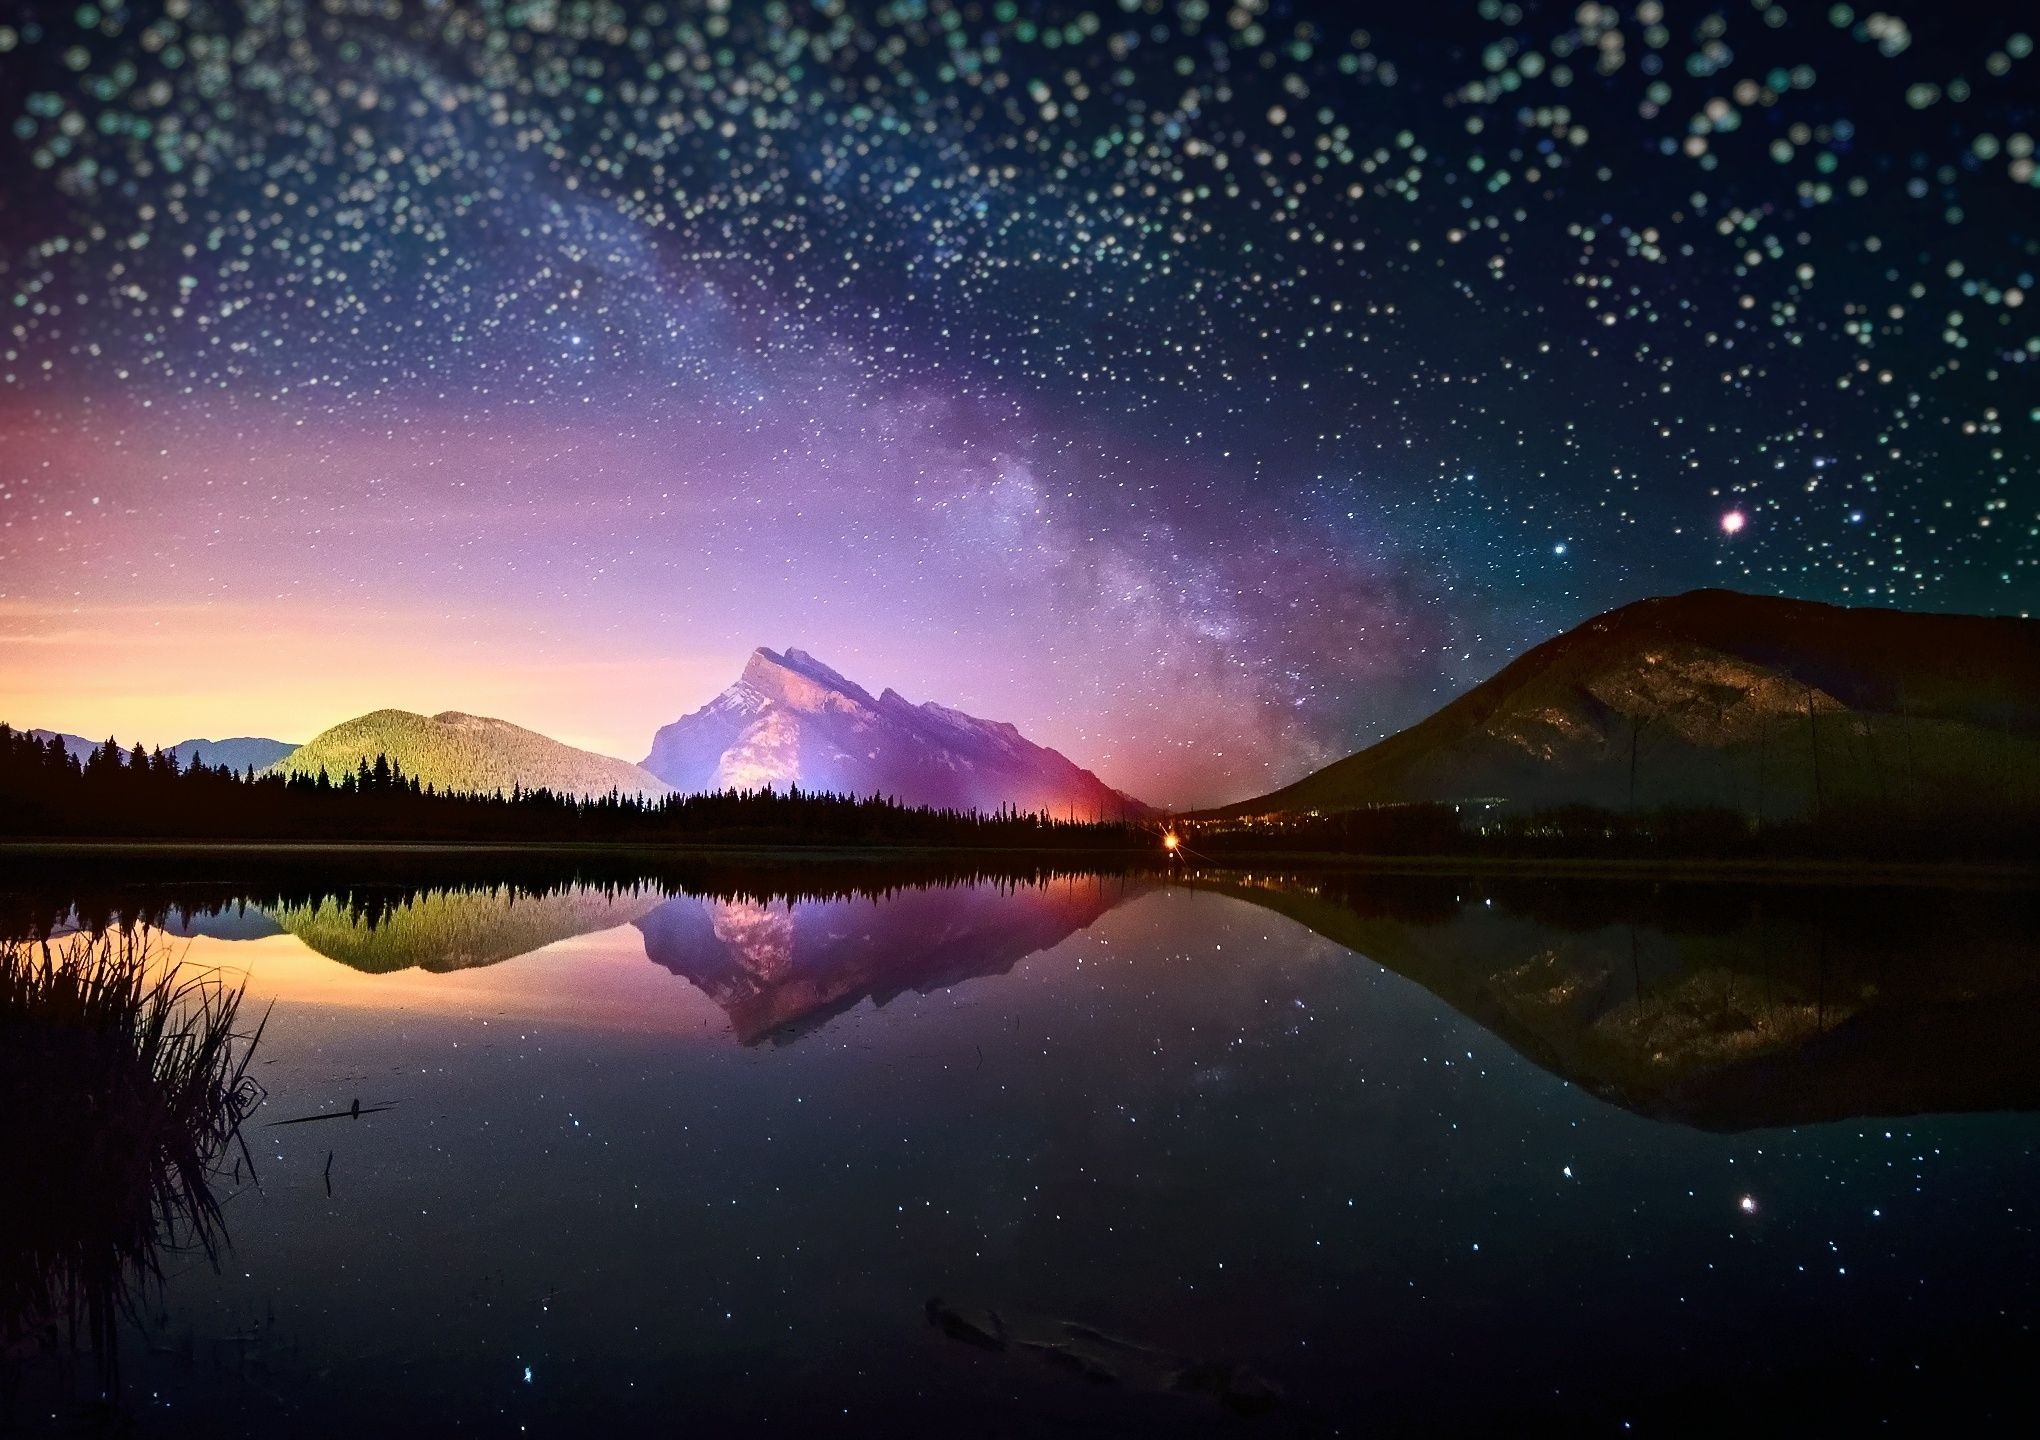 10 Best Starry Night Sky Wallpaper Hd FULL HD 1920×1080 For PC Background | Wallpaper for PC ...